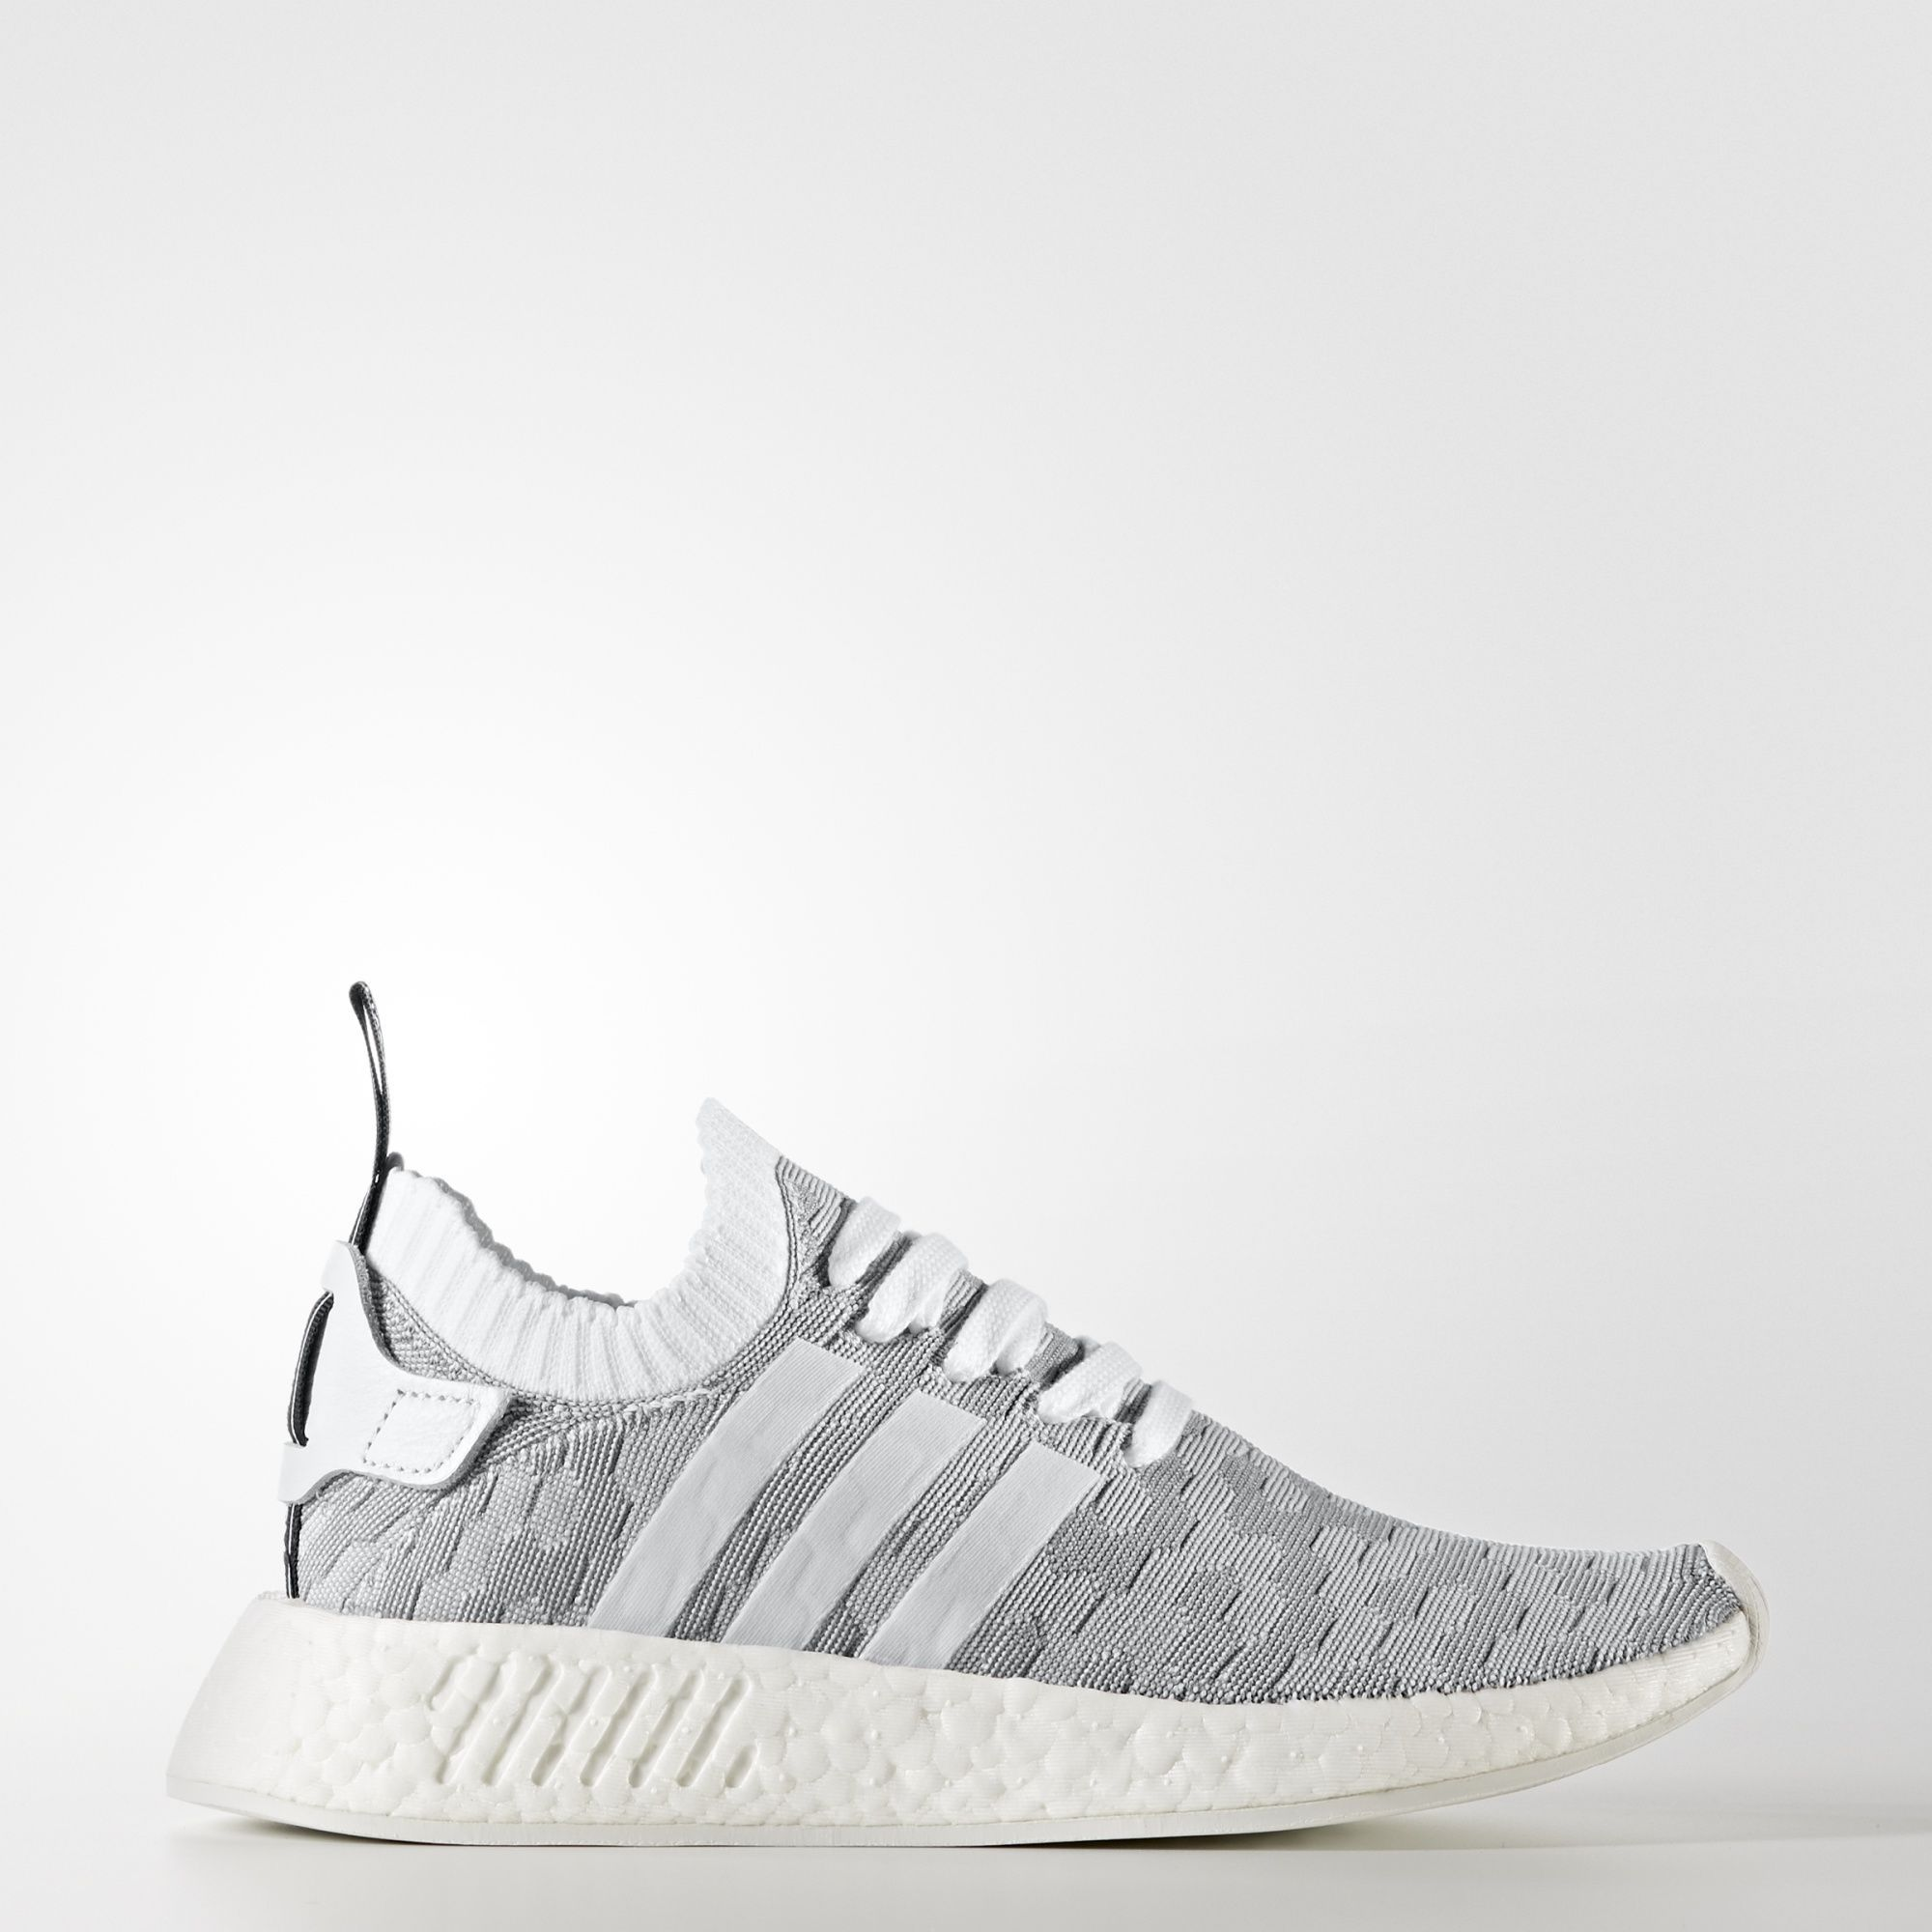 adidas NMD_R2 Primeknit Shoes - White | adidas US